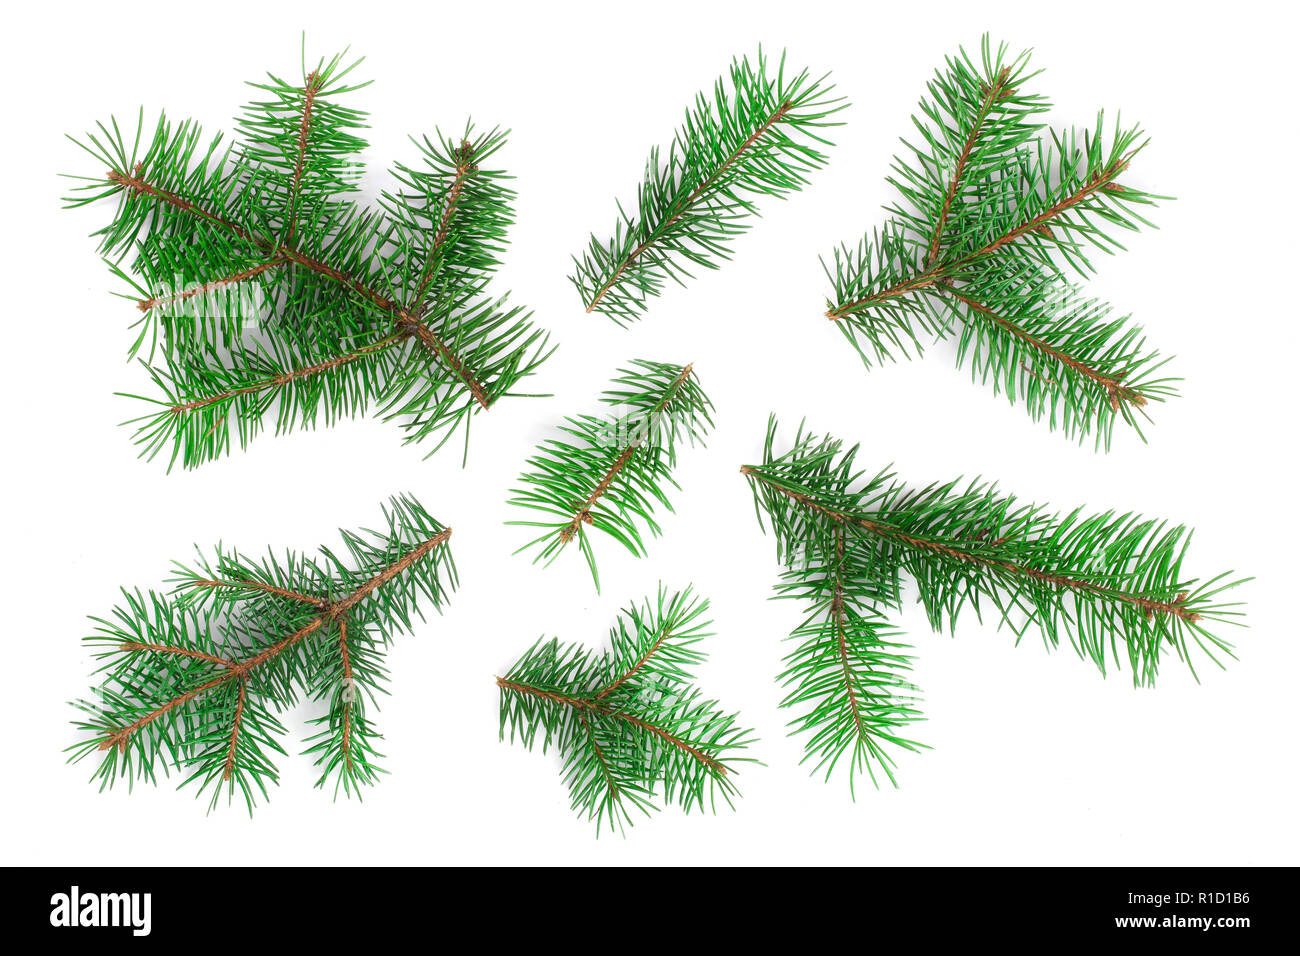 Fir tree branch isolated on white background. Christmas background. Top view - Stock Image